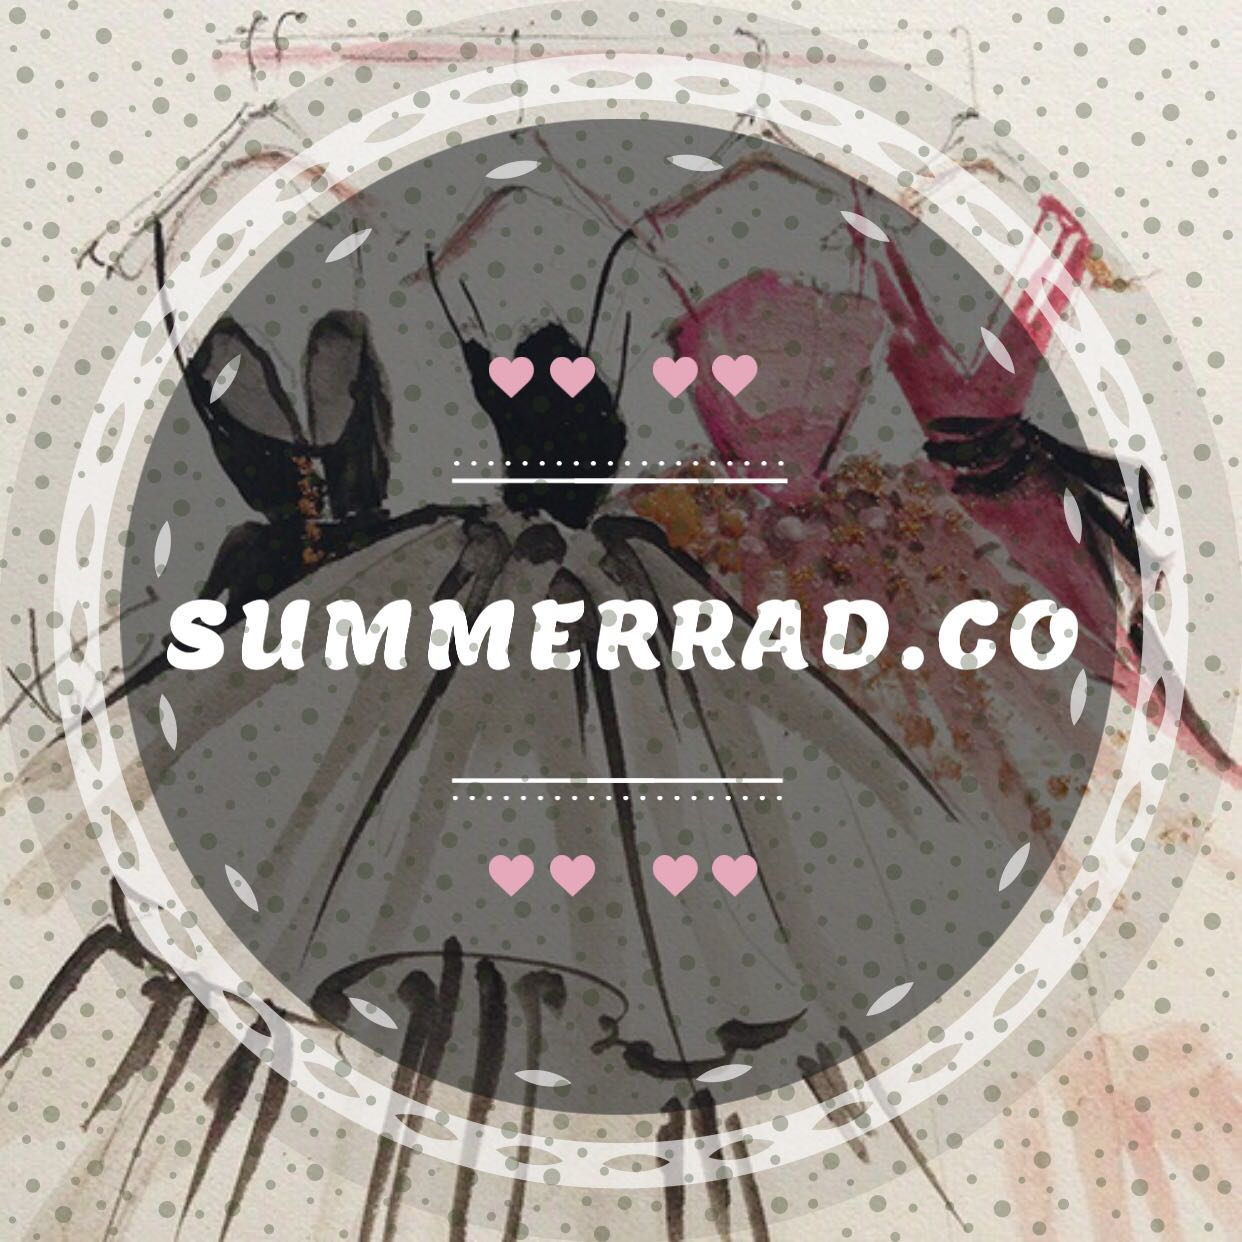 summerrad.co